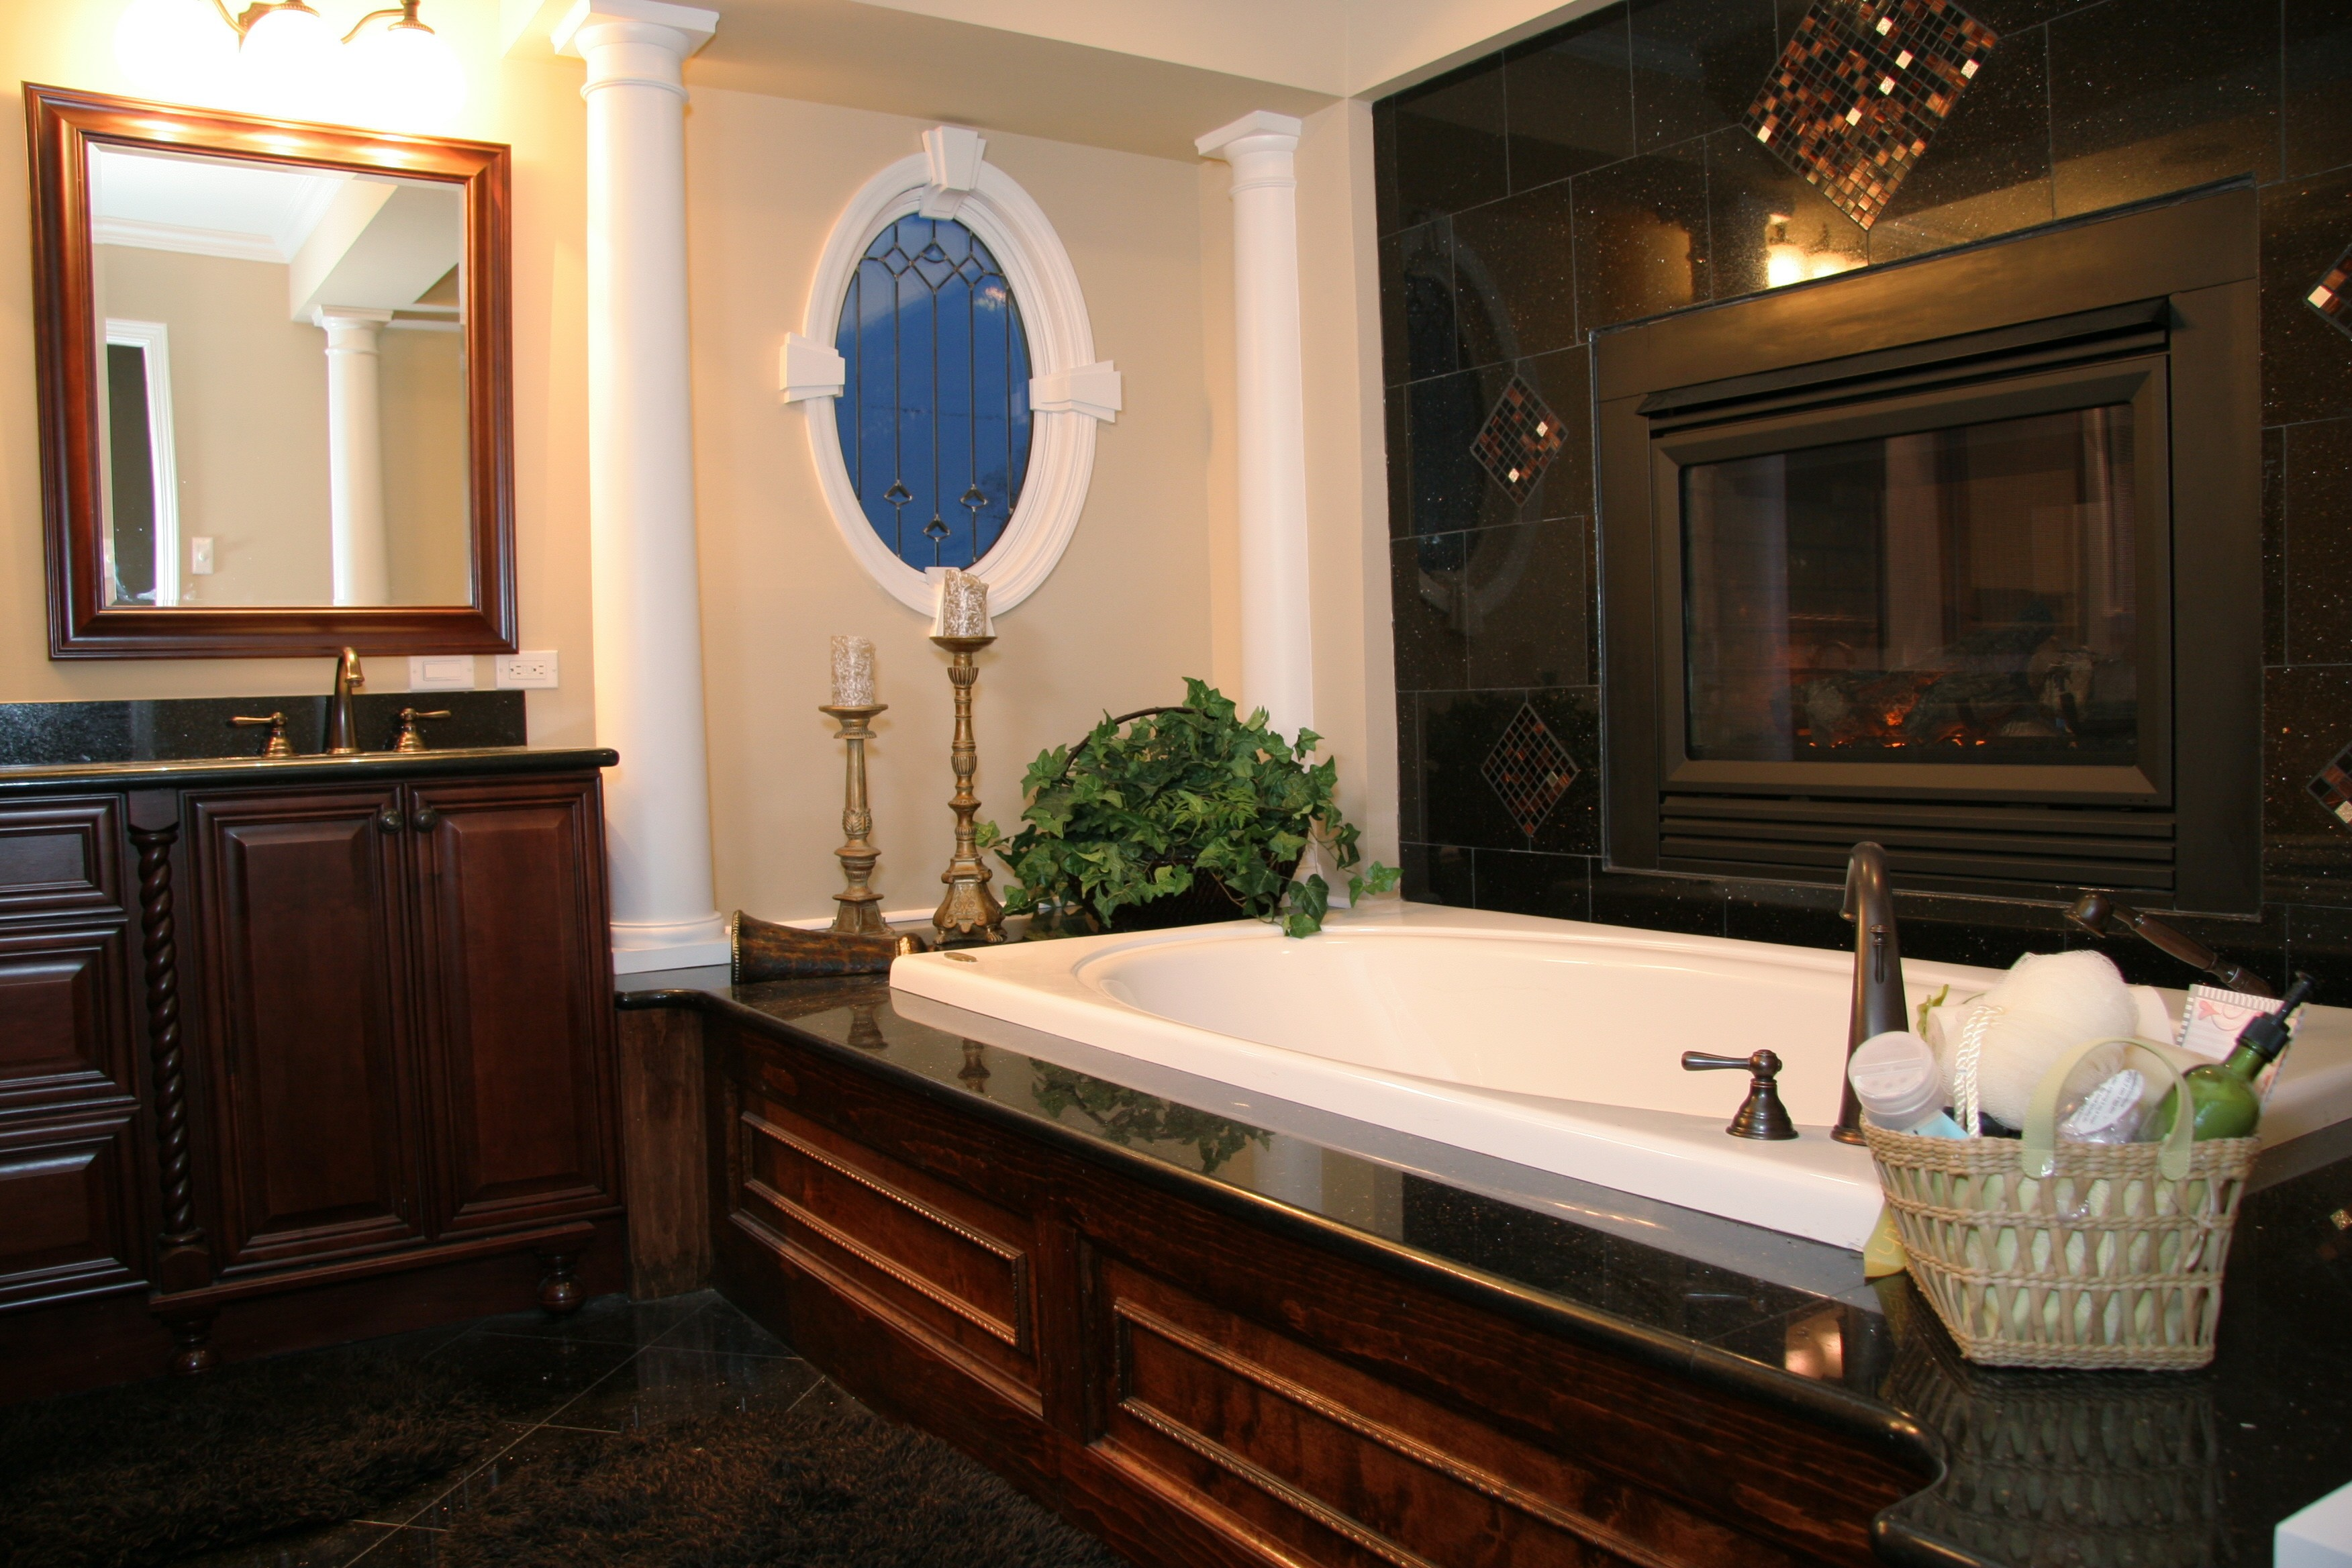 Additionally, prices vary from region to region. Cost Estimates for Monmouth County Bathroom Remodel